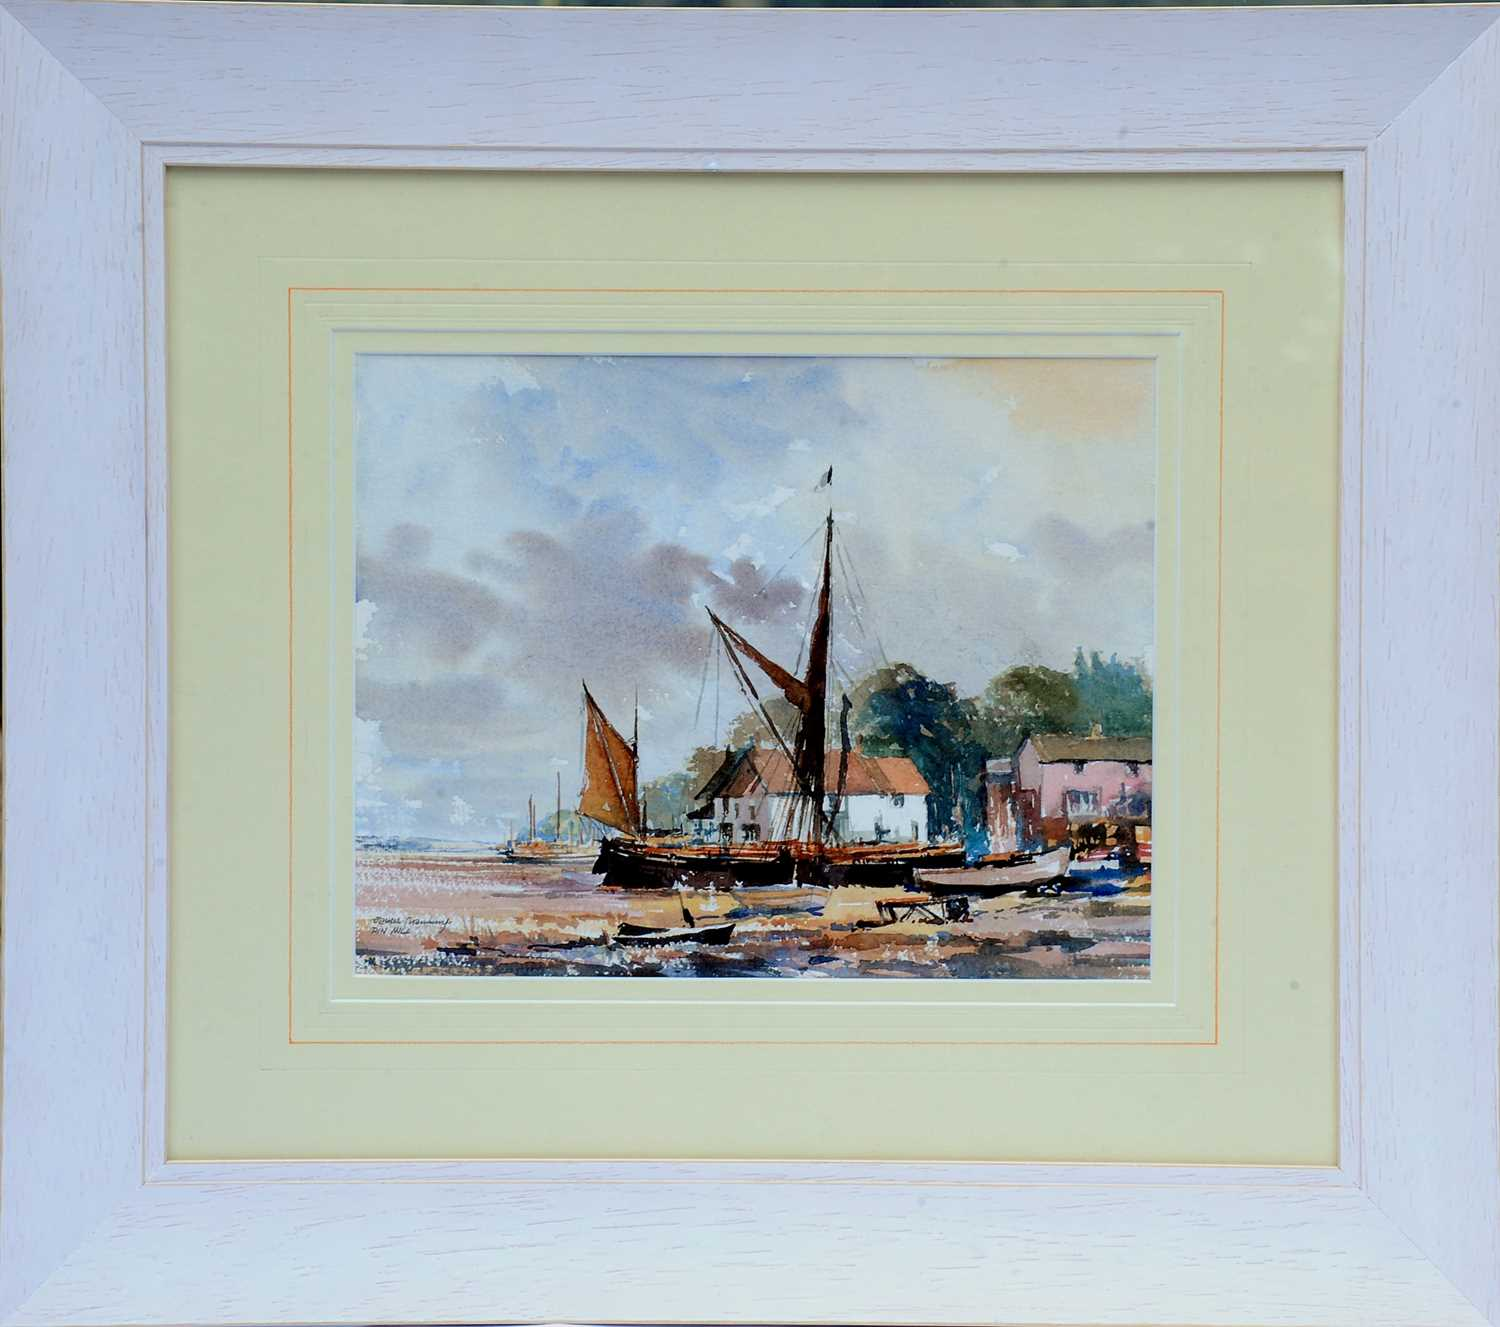 Pin Mill -Watercolour by James Chambury Original watercolour, accompanied by a hardback book James - Image 3 of 3